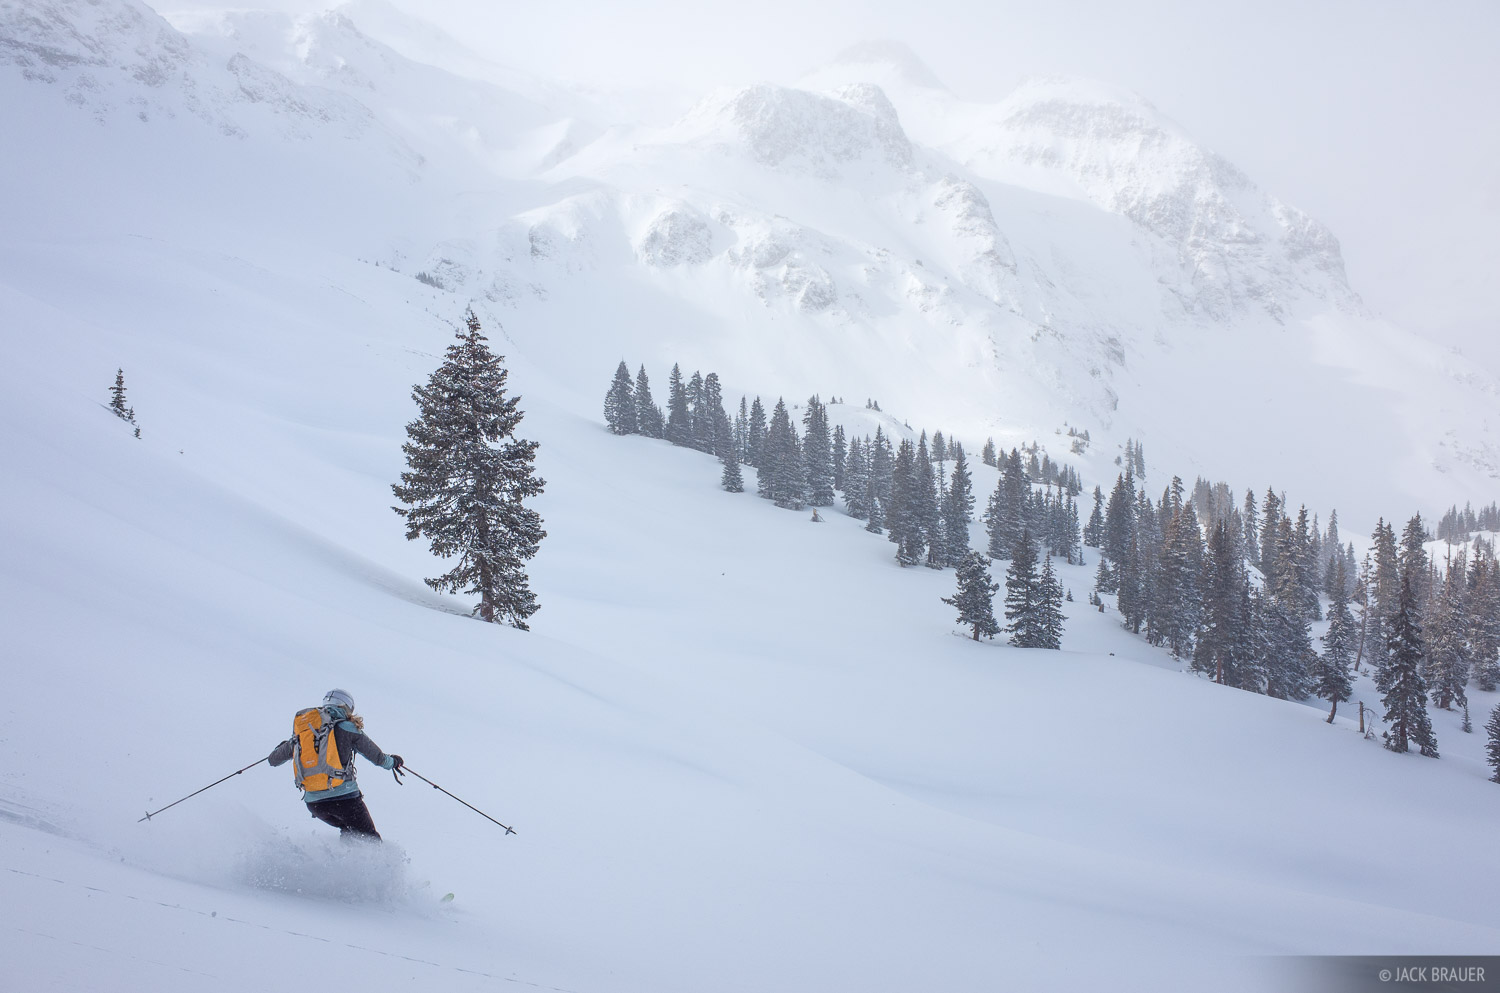 skiing, San Juan Mountains, Colorado, December, photo